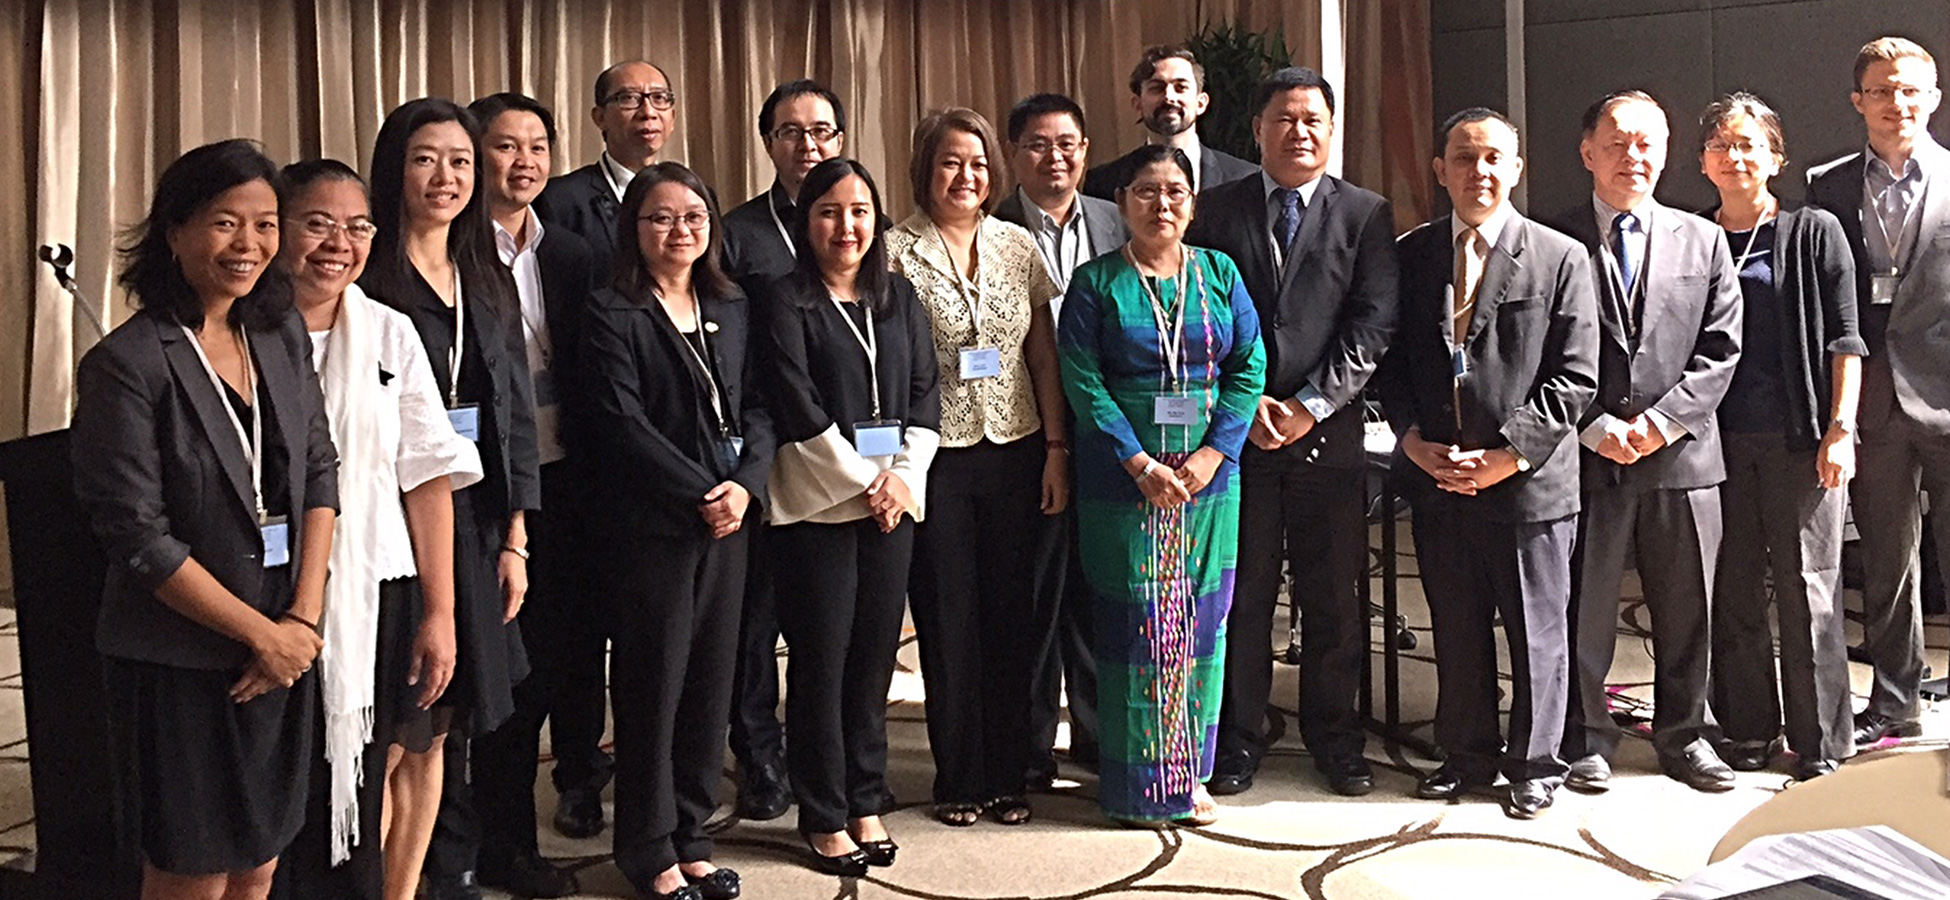 ASEAN Ministries of Agriculture and Environment to discuss shared vision to address climate change impacts and drivers in agriculture.